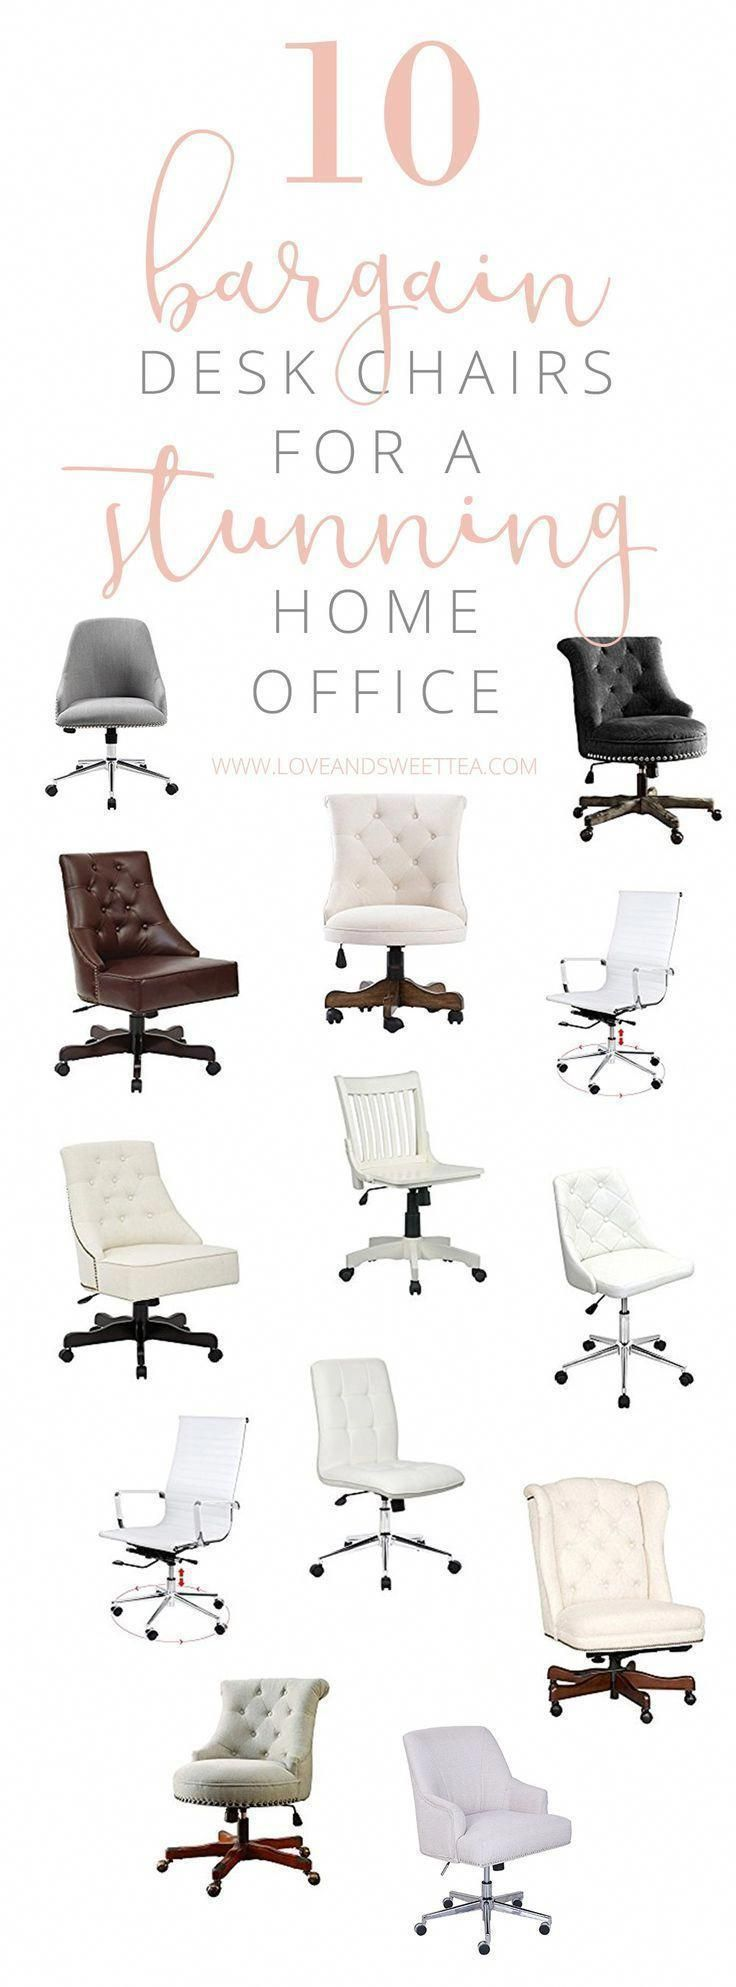 Add Those Two Things Together Pretty Desk Chair Comfortable Desk Chair And You Bet I M Doing So Desk Chair Comfortable Pretty Desk Chairs Comfortable Desk